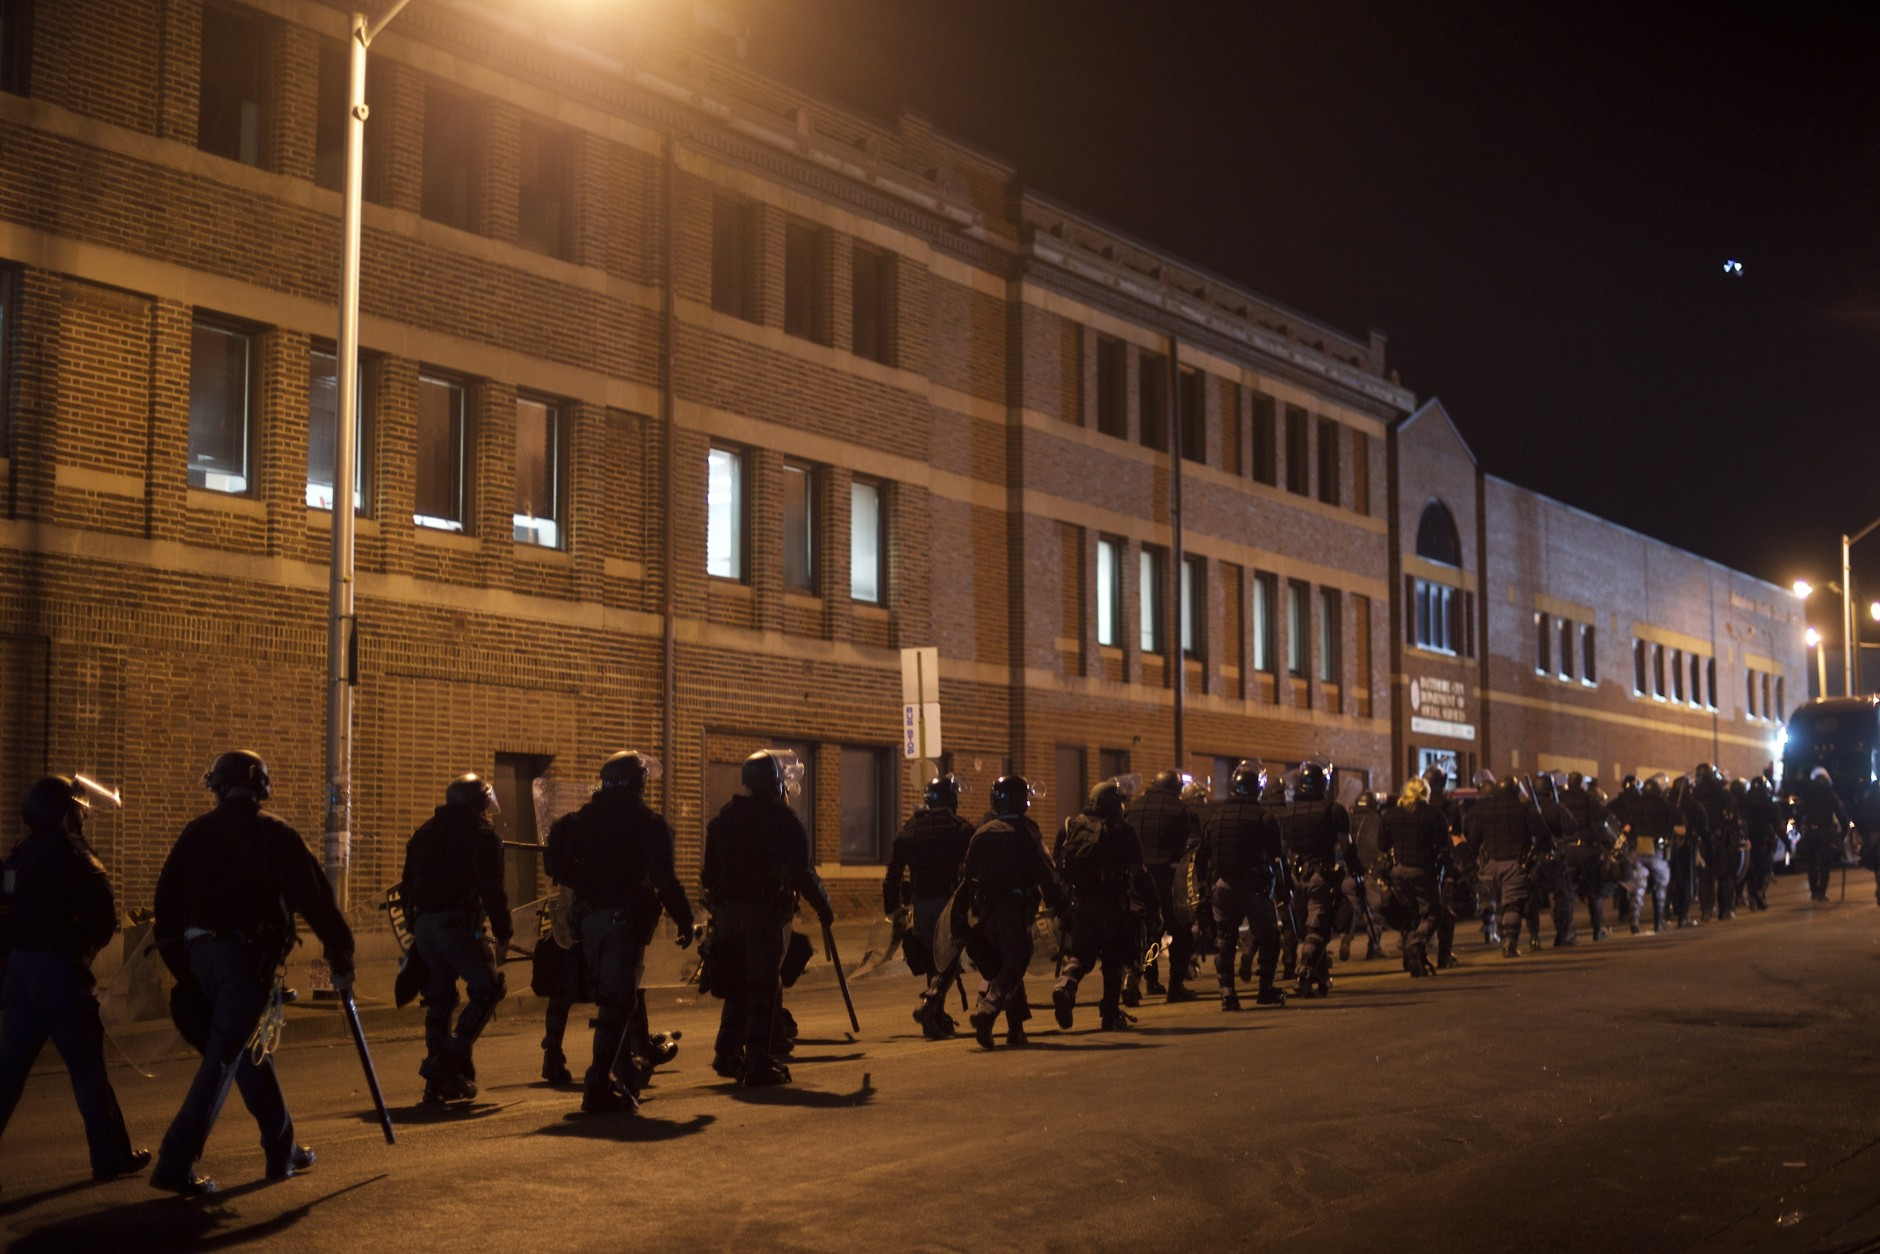 Riot police depart after forming a barricade and dispensing tear gas near the burned out CVS pharmacy the night after citywide riots over the death of Freddie Gray on April 28, 2015 in Baltimore, Maryland. Freddie Gray, 25, was arrested for possessing a switch blade knife April 12 outside the Gilmor Houses housing project on Baltimore's west side. According to his attorney, Gray died a week later in the hospital from a severe spinal cord injury he received while in police custody. (Photo by Mark Makela/Getty Images)